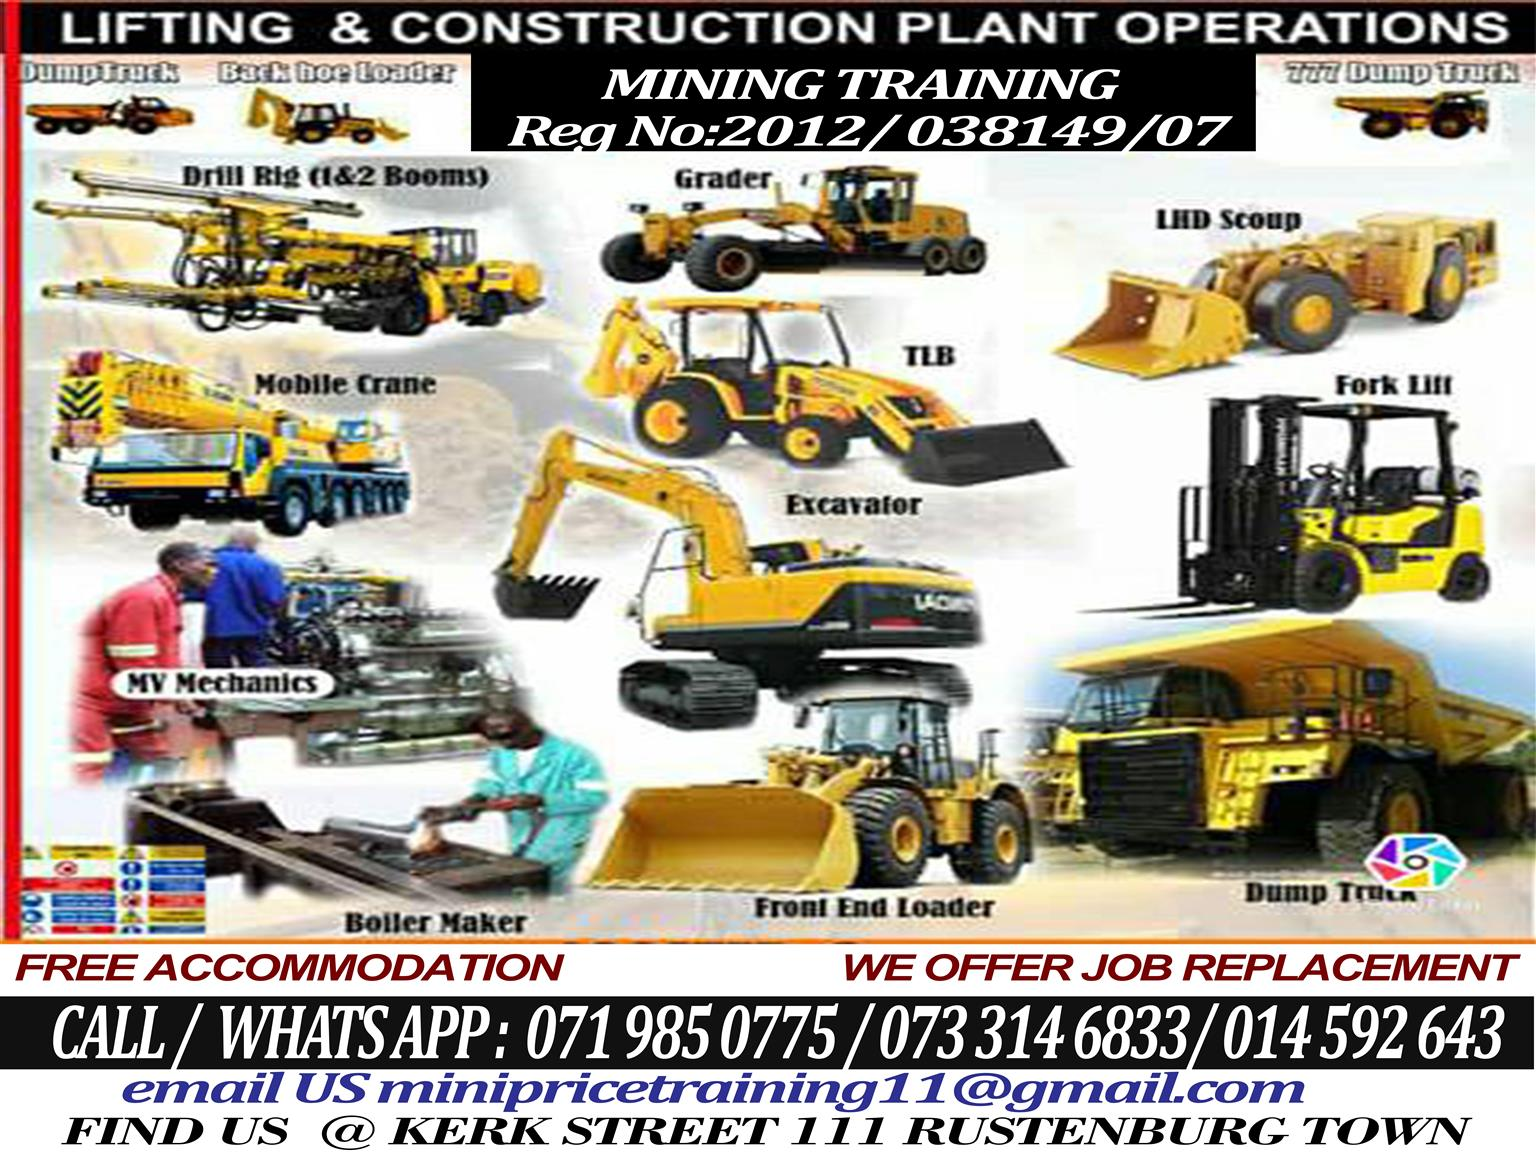 RDO (LHD scoop) dumper Excavator 777 dump truck Drill rig training.Accredited operator school Safety courses